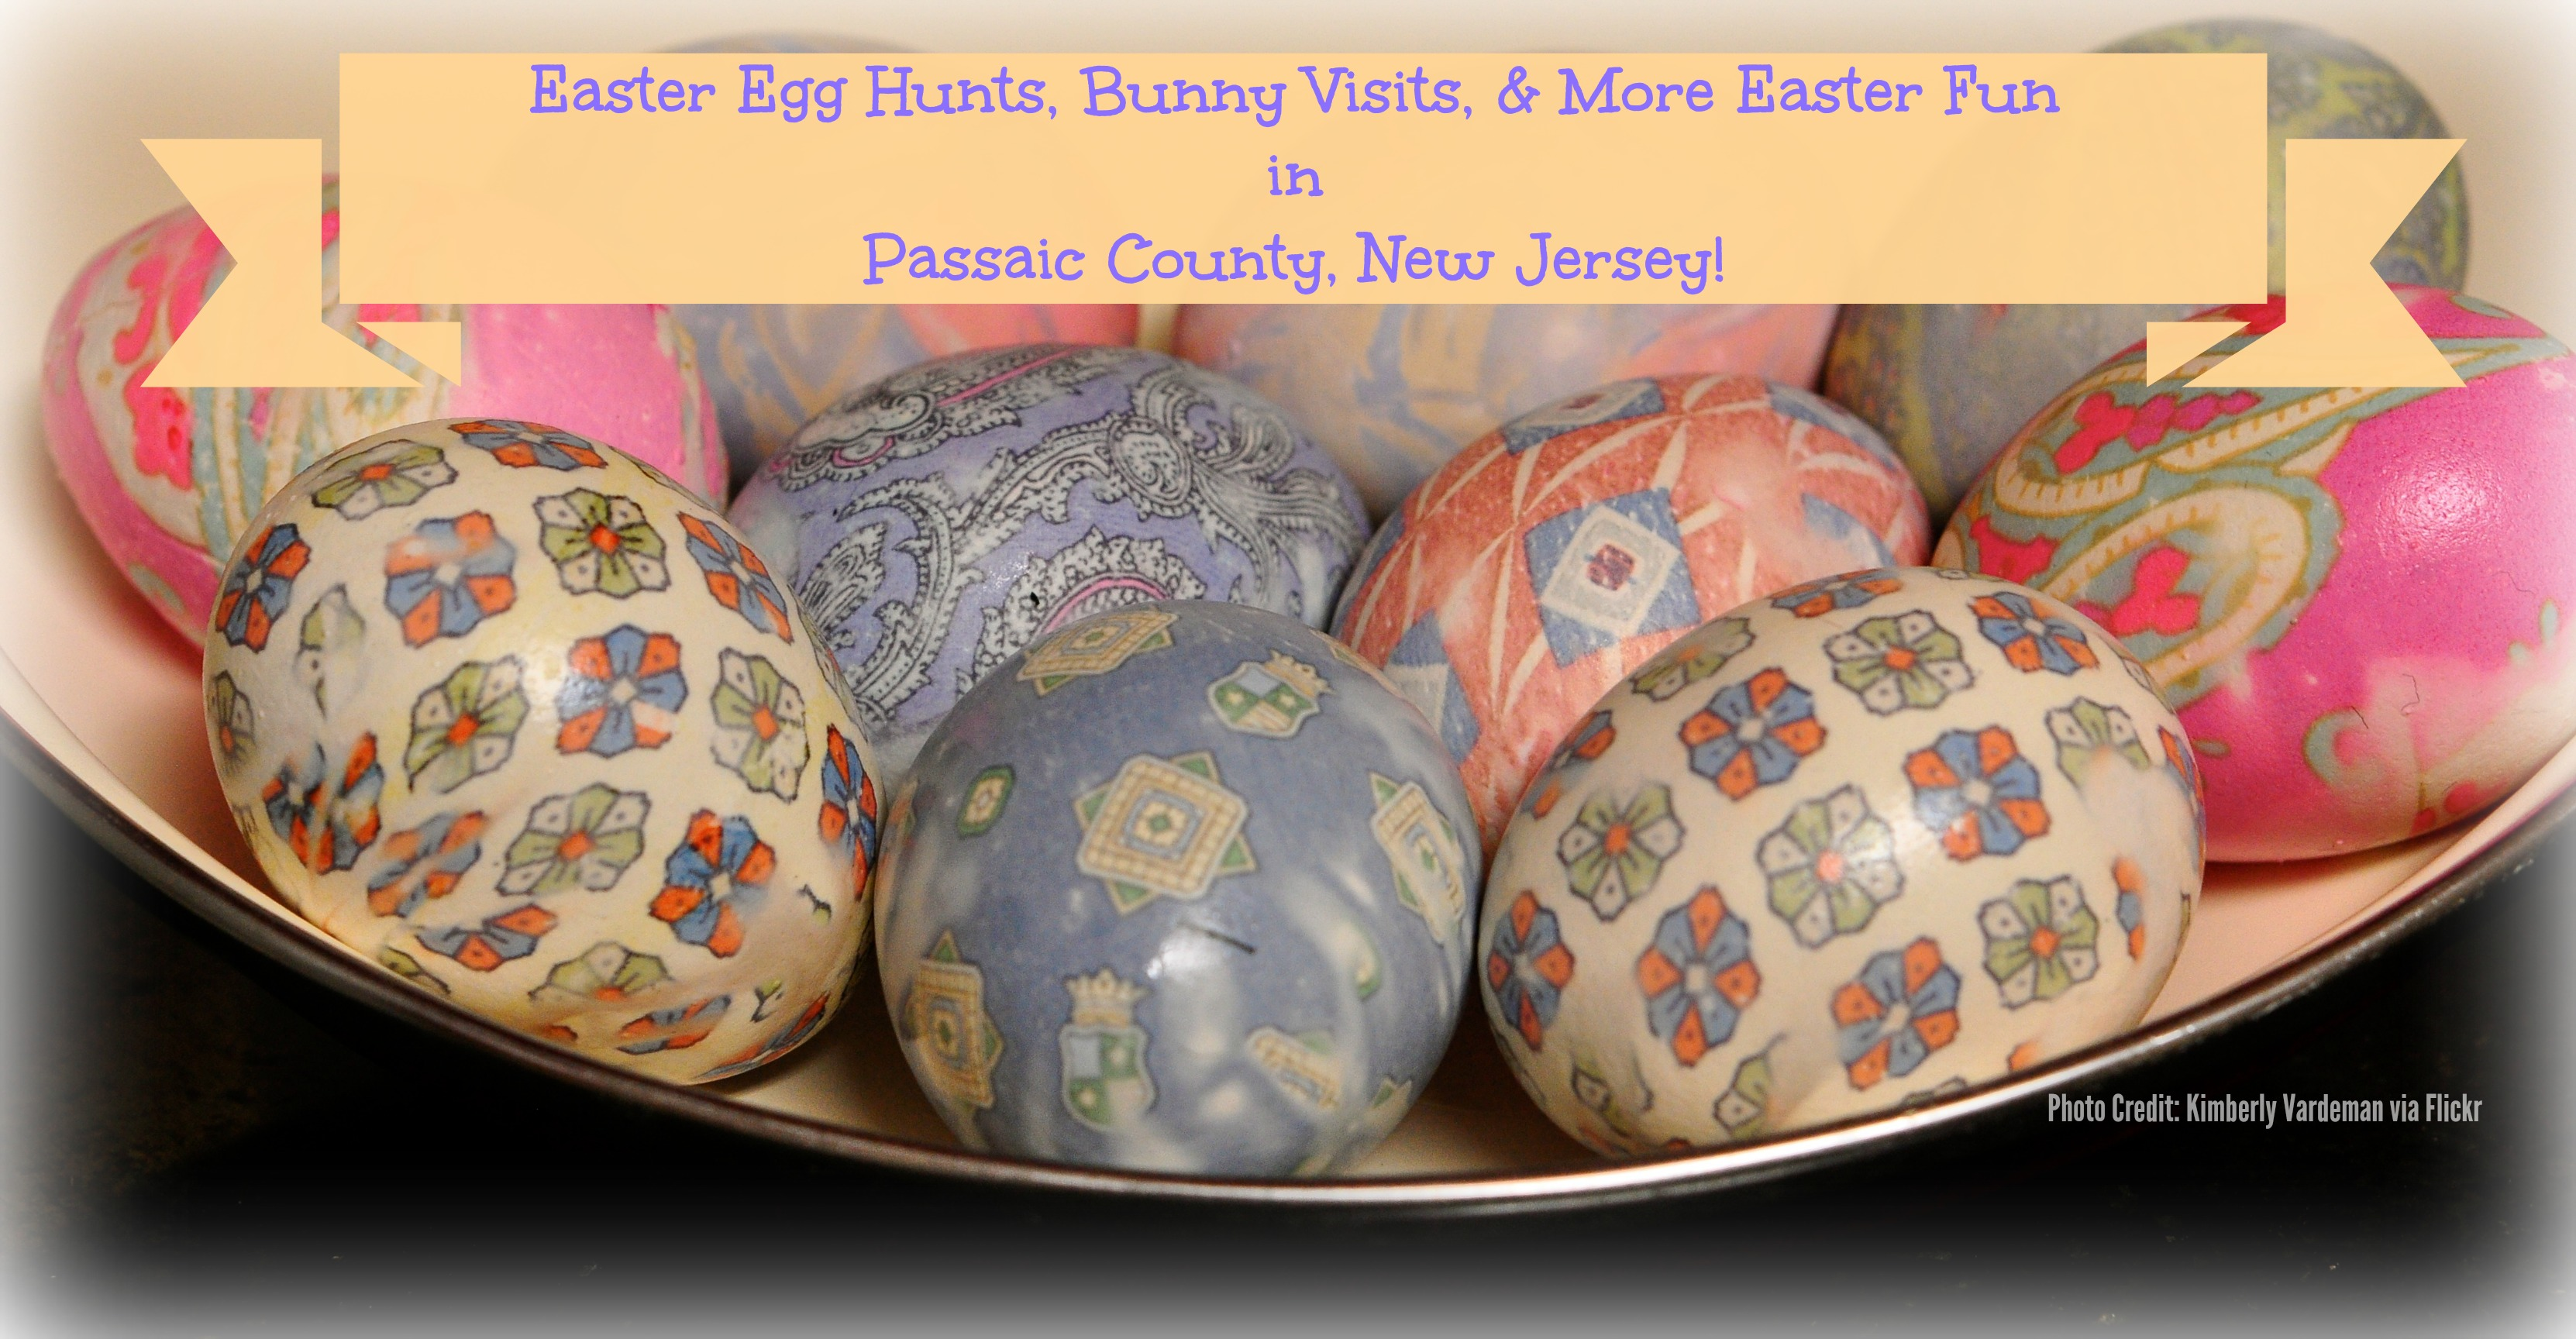 New jersey passaic county wayne - Fun Easter Events In Passaic County New Jersey Things To Do In New Jersey